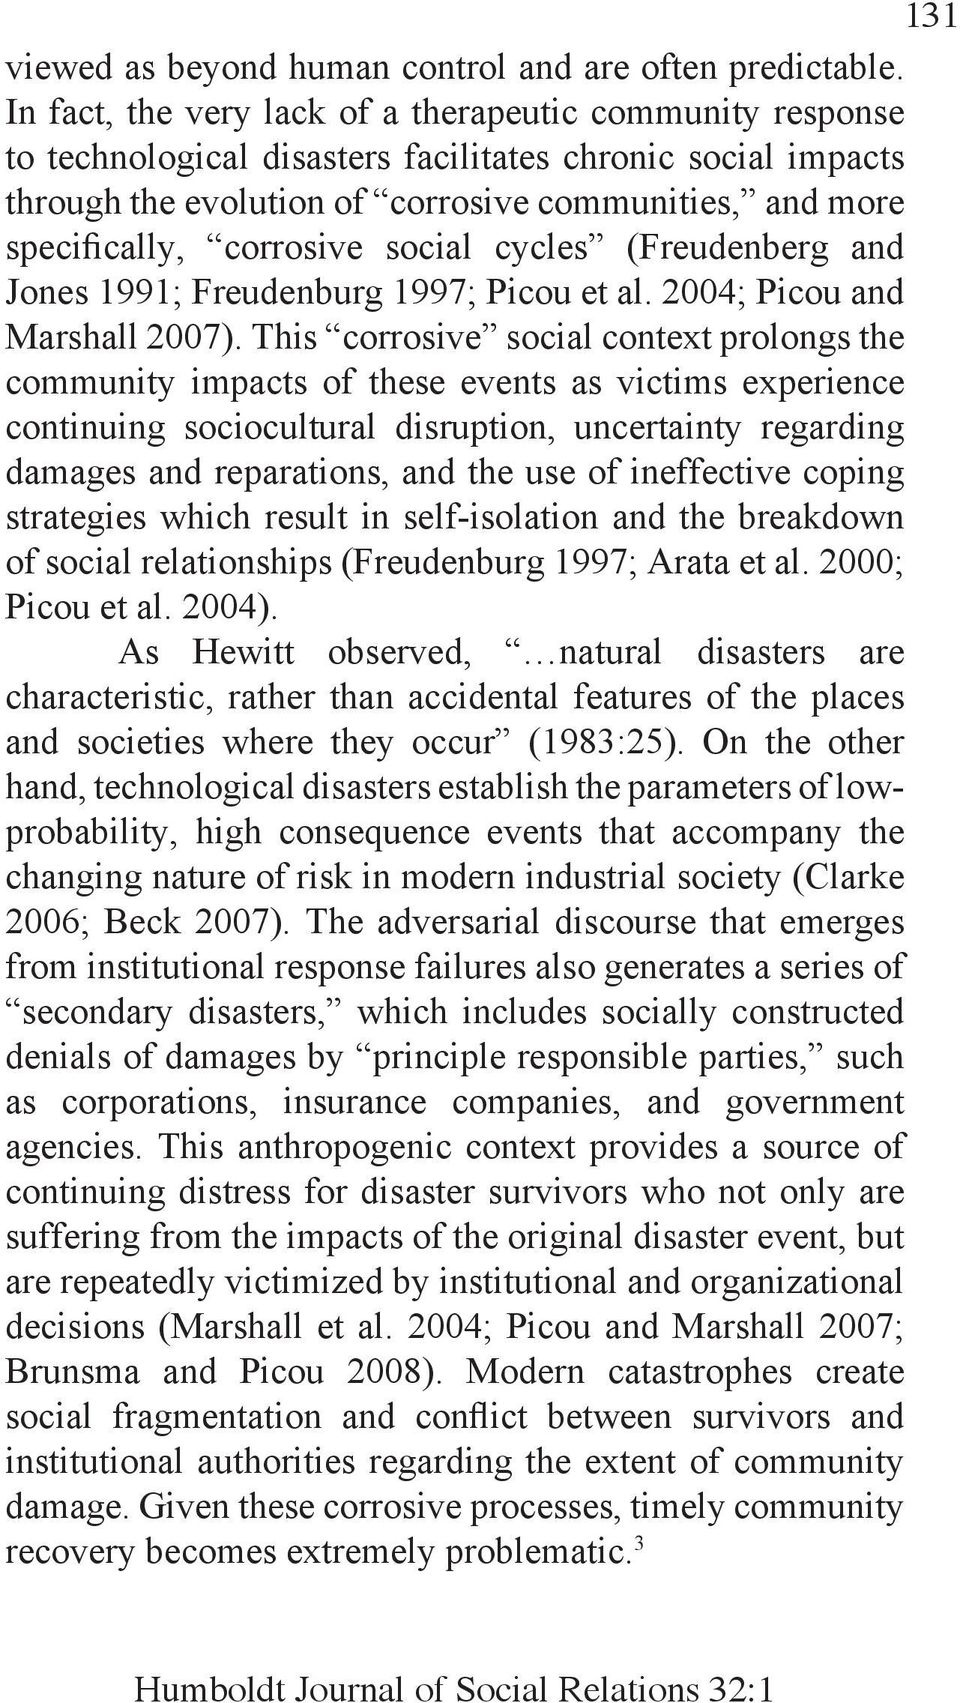 corrosive social cycles (Freudenberg and Jones 1991; Freudenburg 1997; Picou et al. 2004; Picou and Marshall 2007).